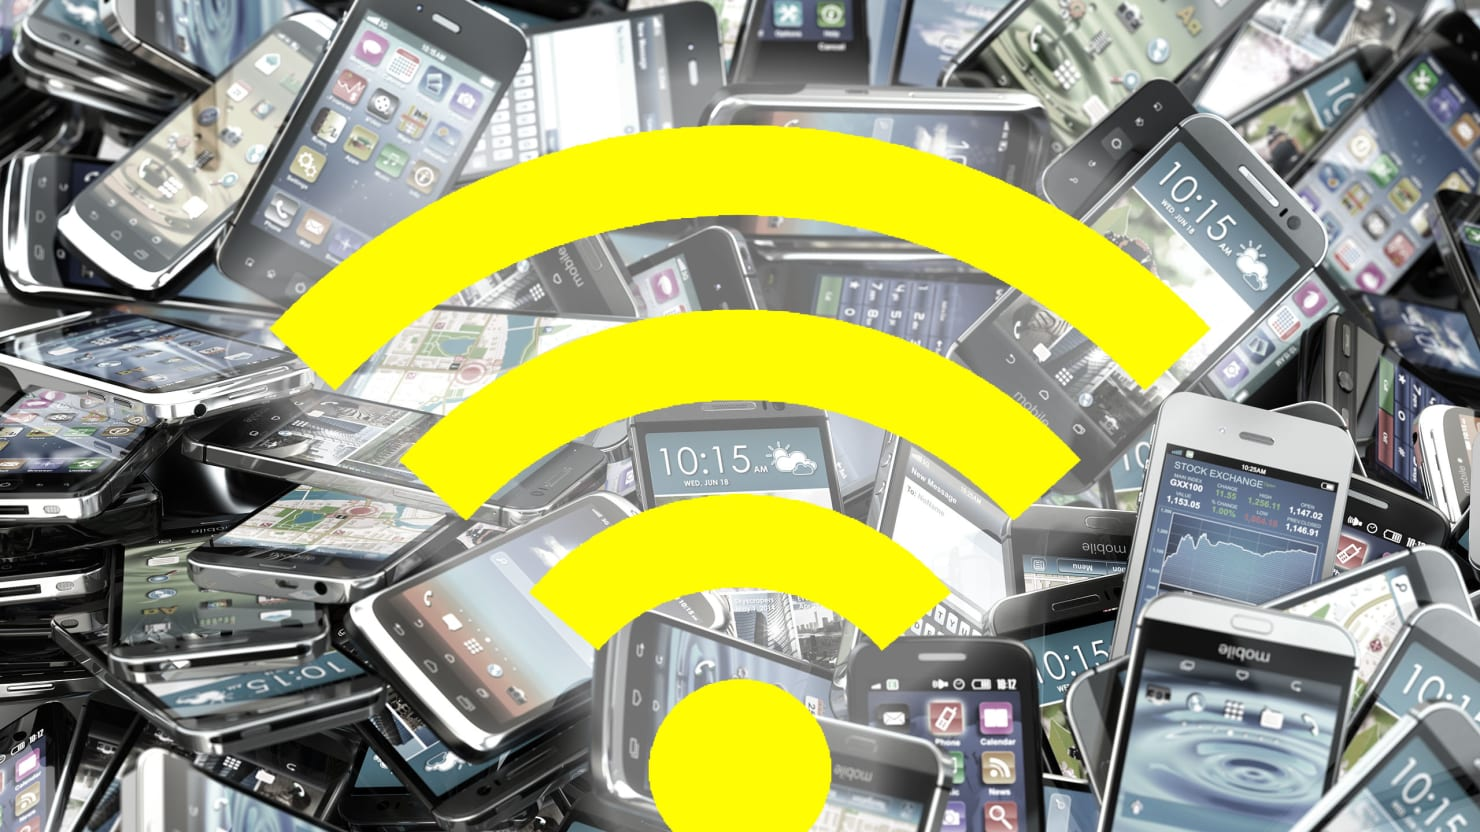 Better Wi-Fi Is Doomsday for Wireless Carriers